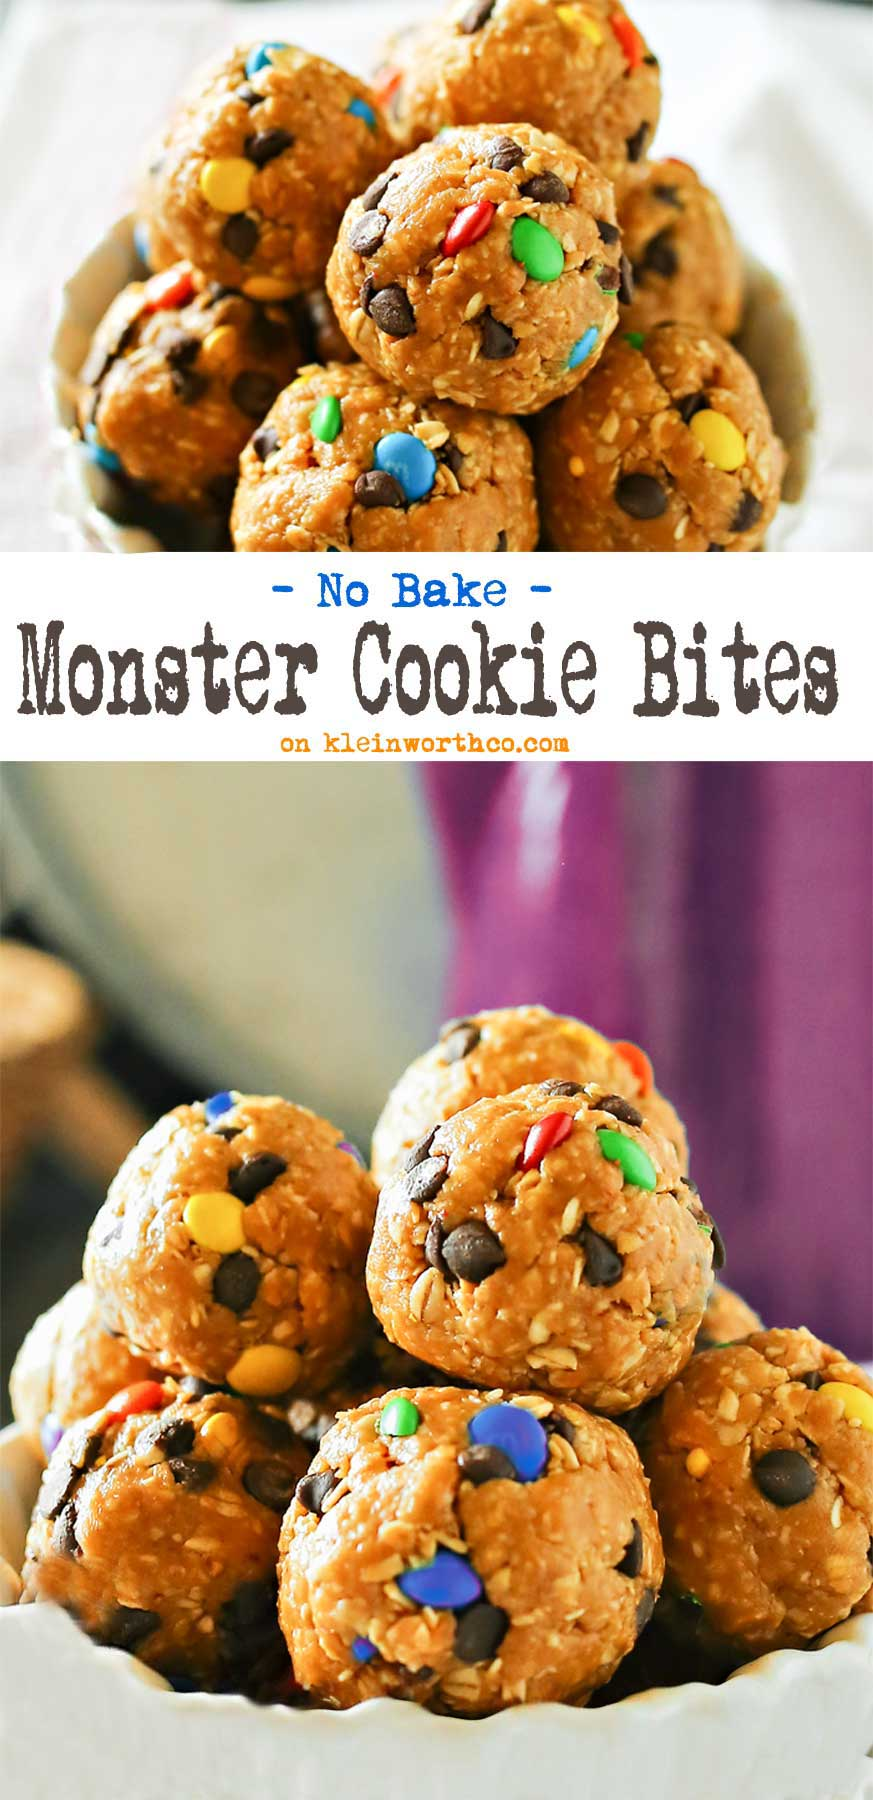 Monster Cookie Bites are an easy no-bake dessert that any M&M lover will ask for time & time again. Oats, peanut butter & honey make these a great snack!